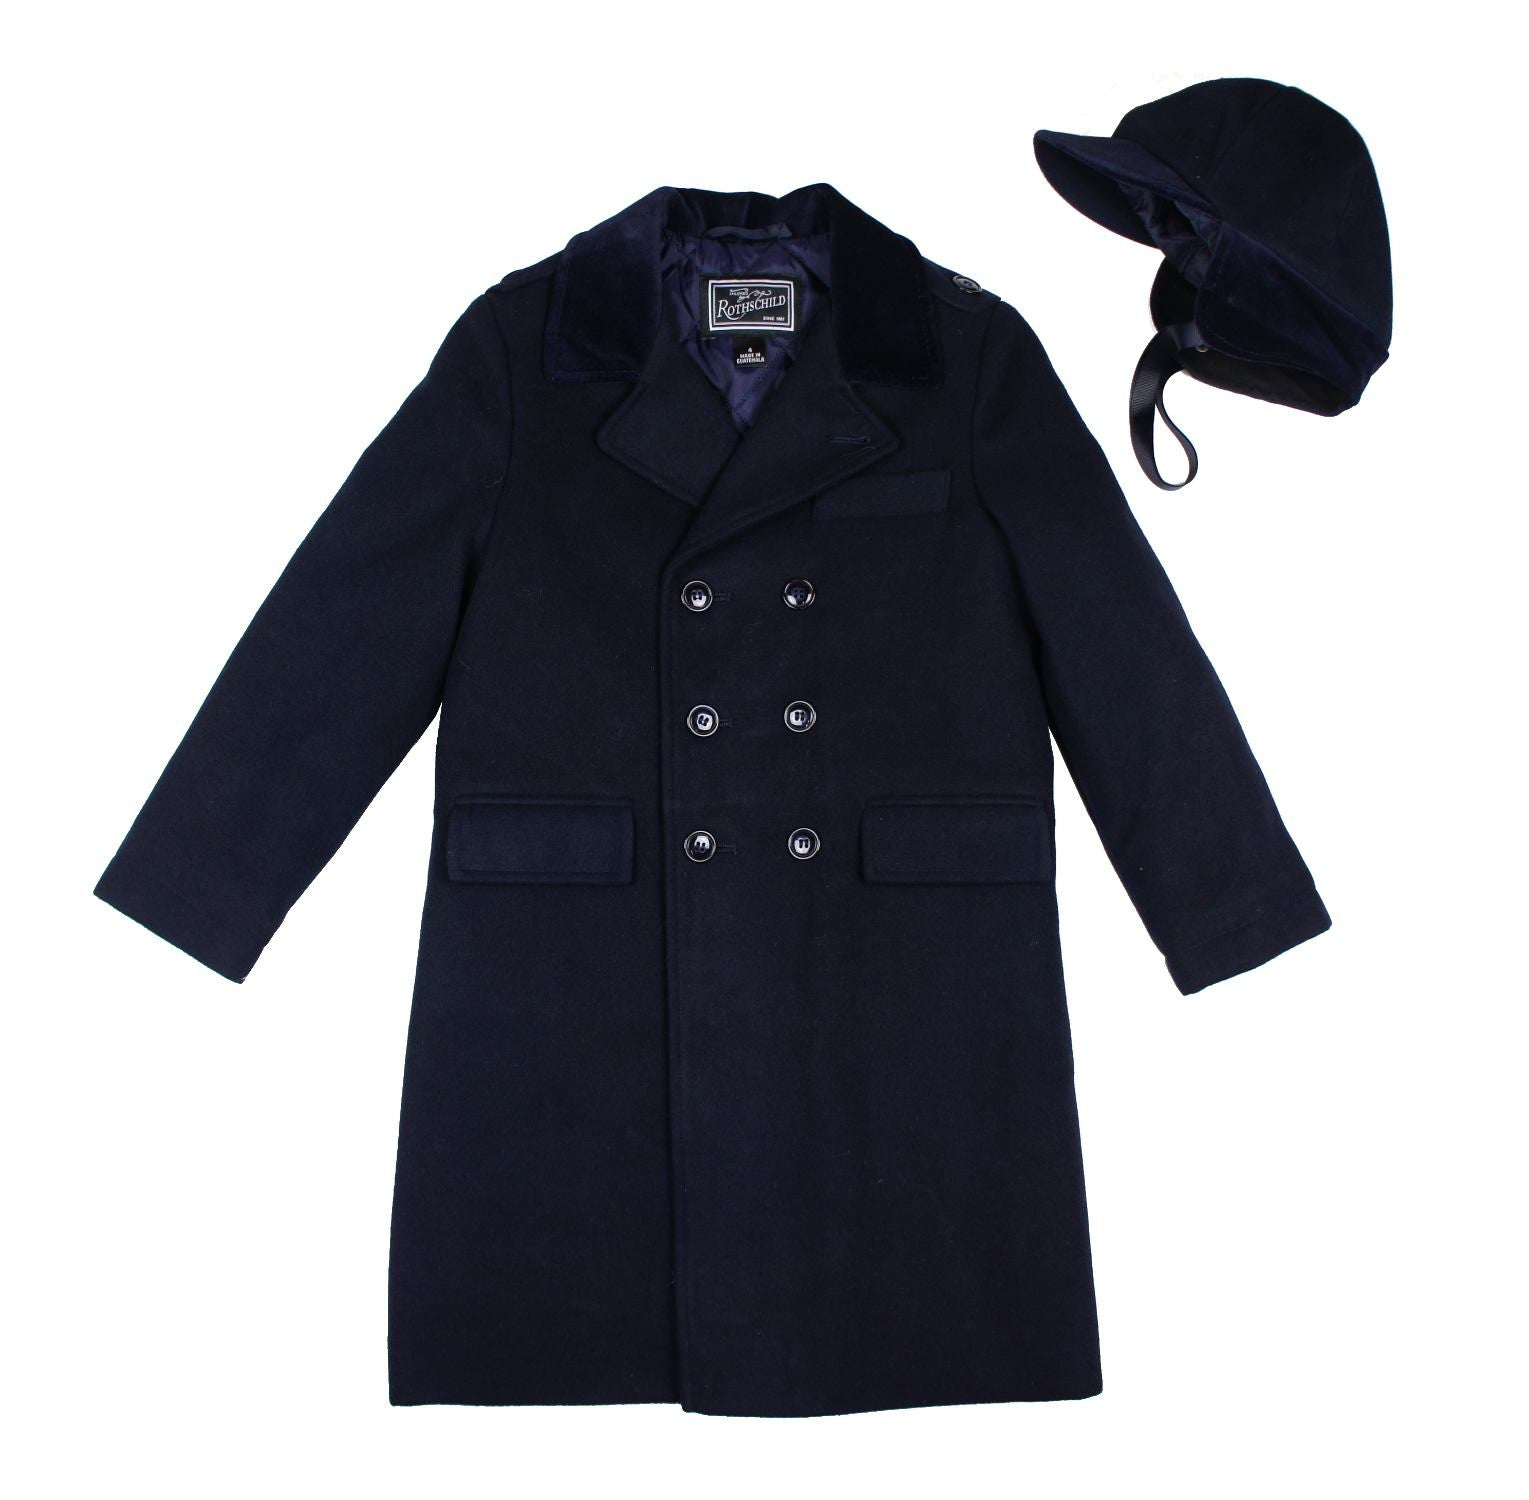 Rothschild Midnight Military Double Breasted John John Coat - Young Timers Boutique